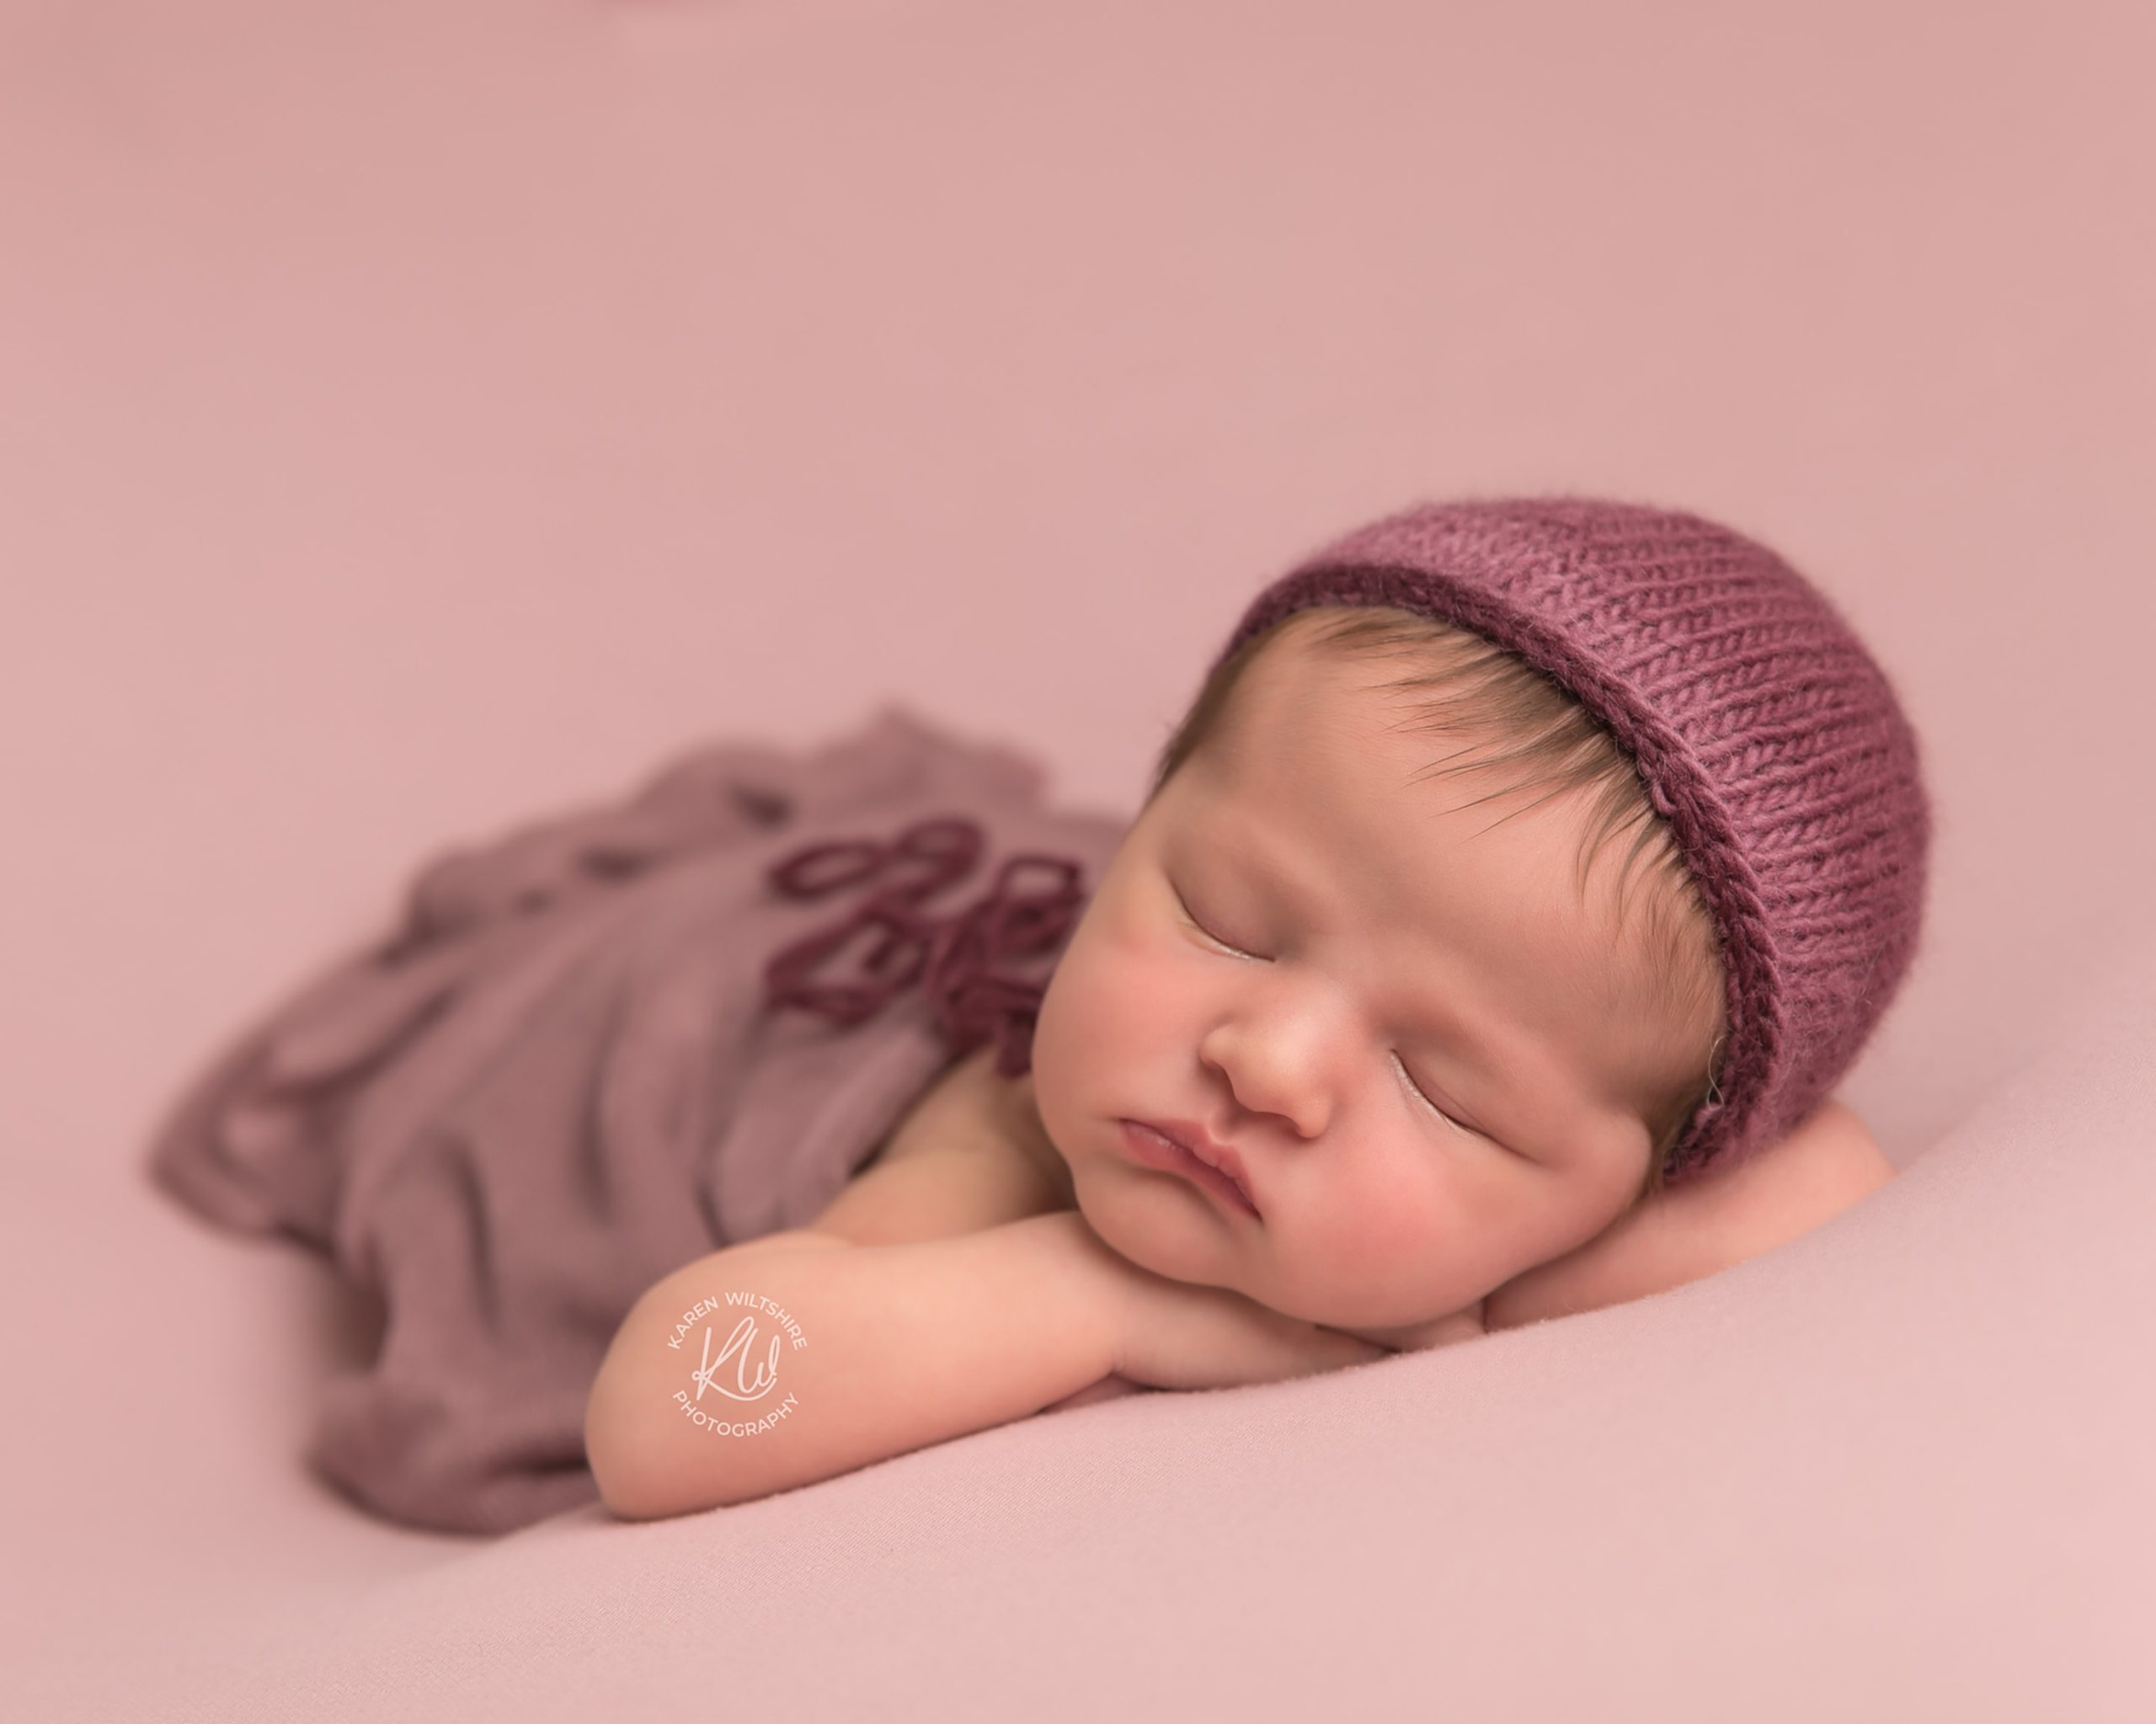 Baby girl sleeping soundly in a pink bonnet and blanket